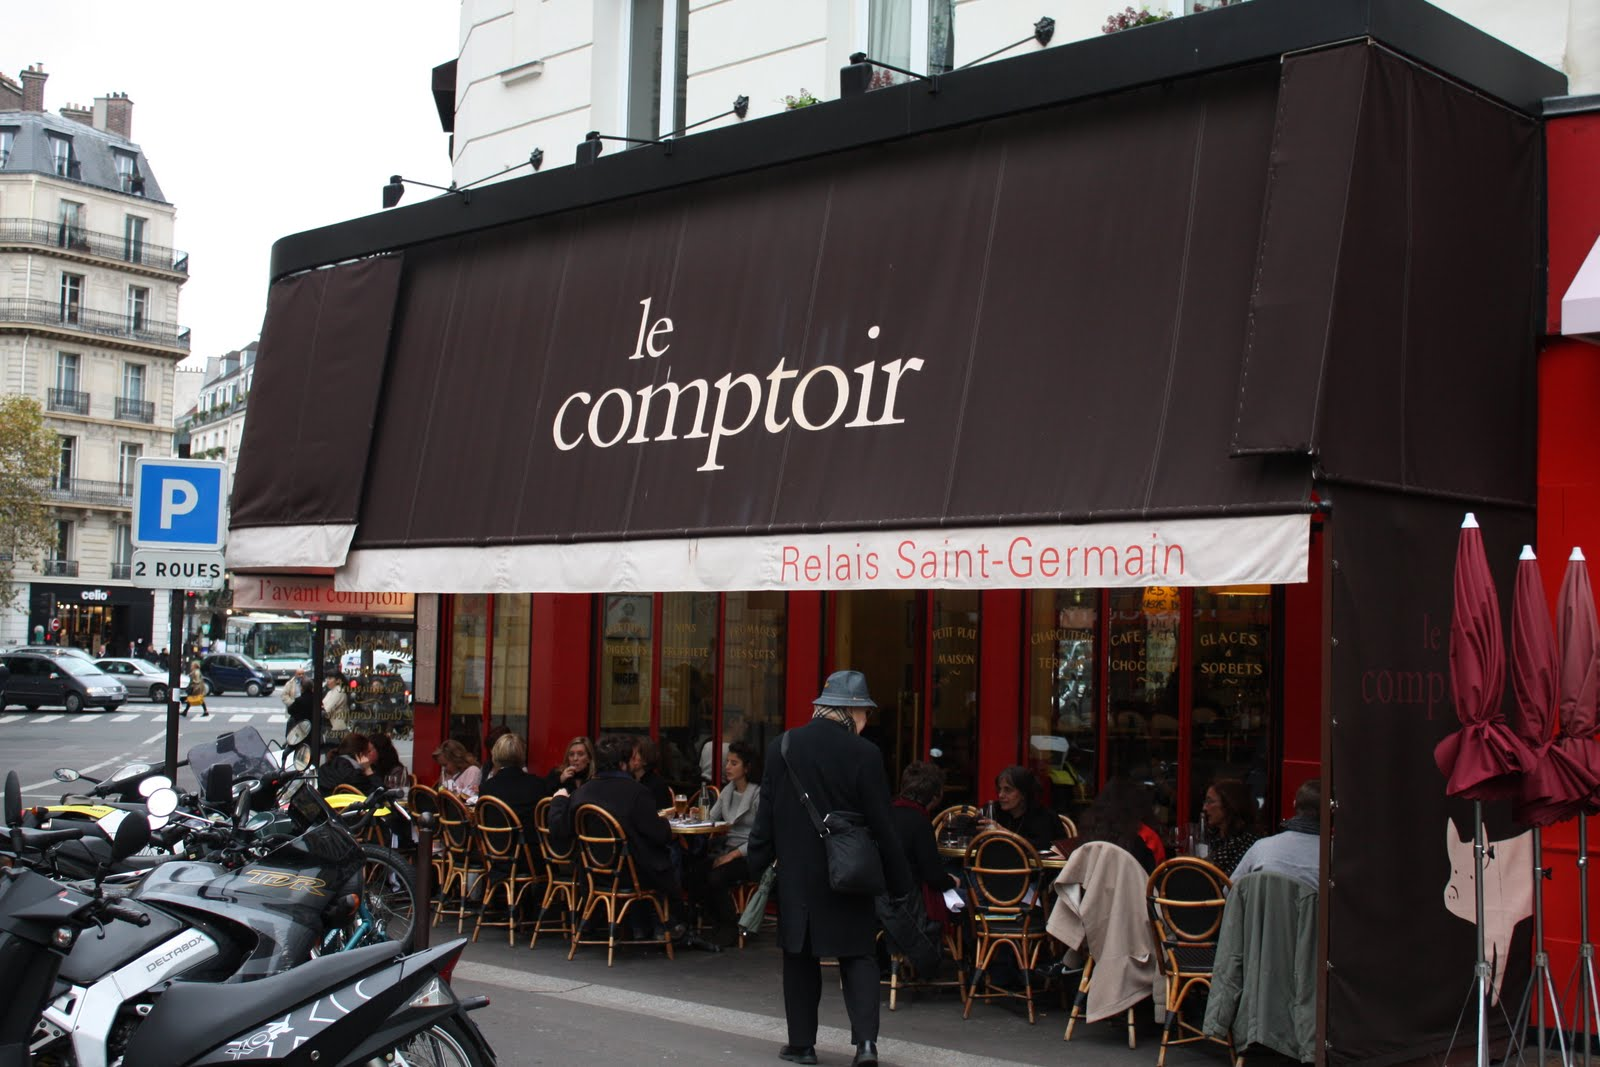 Nyc girl uninterrupted lunch at le comptoir paris - Le comptoir paris restaurant reservations ...